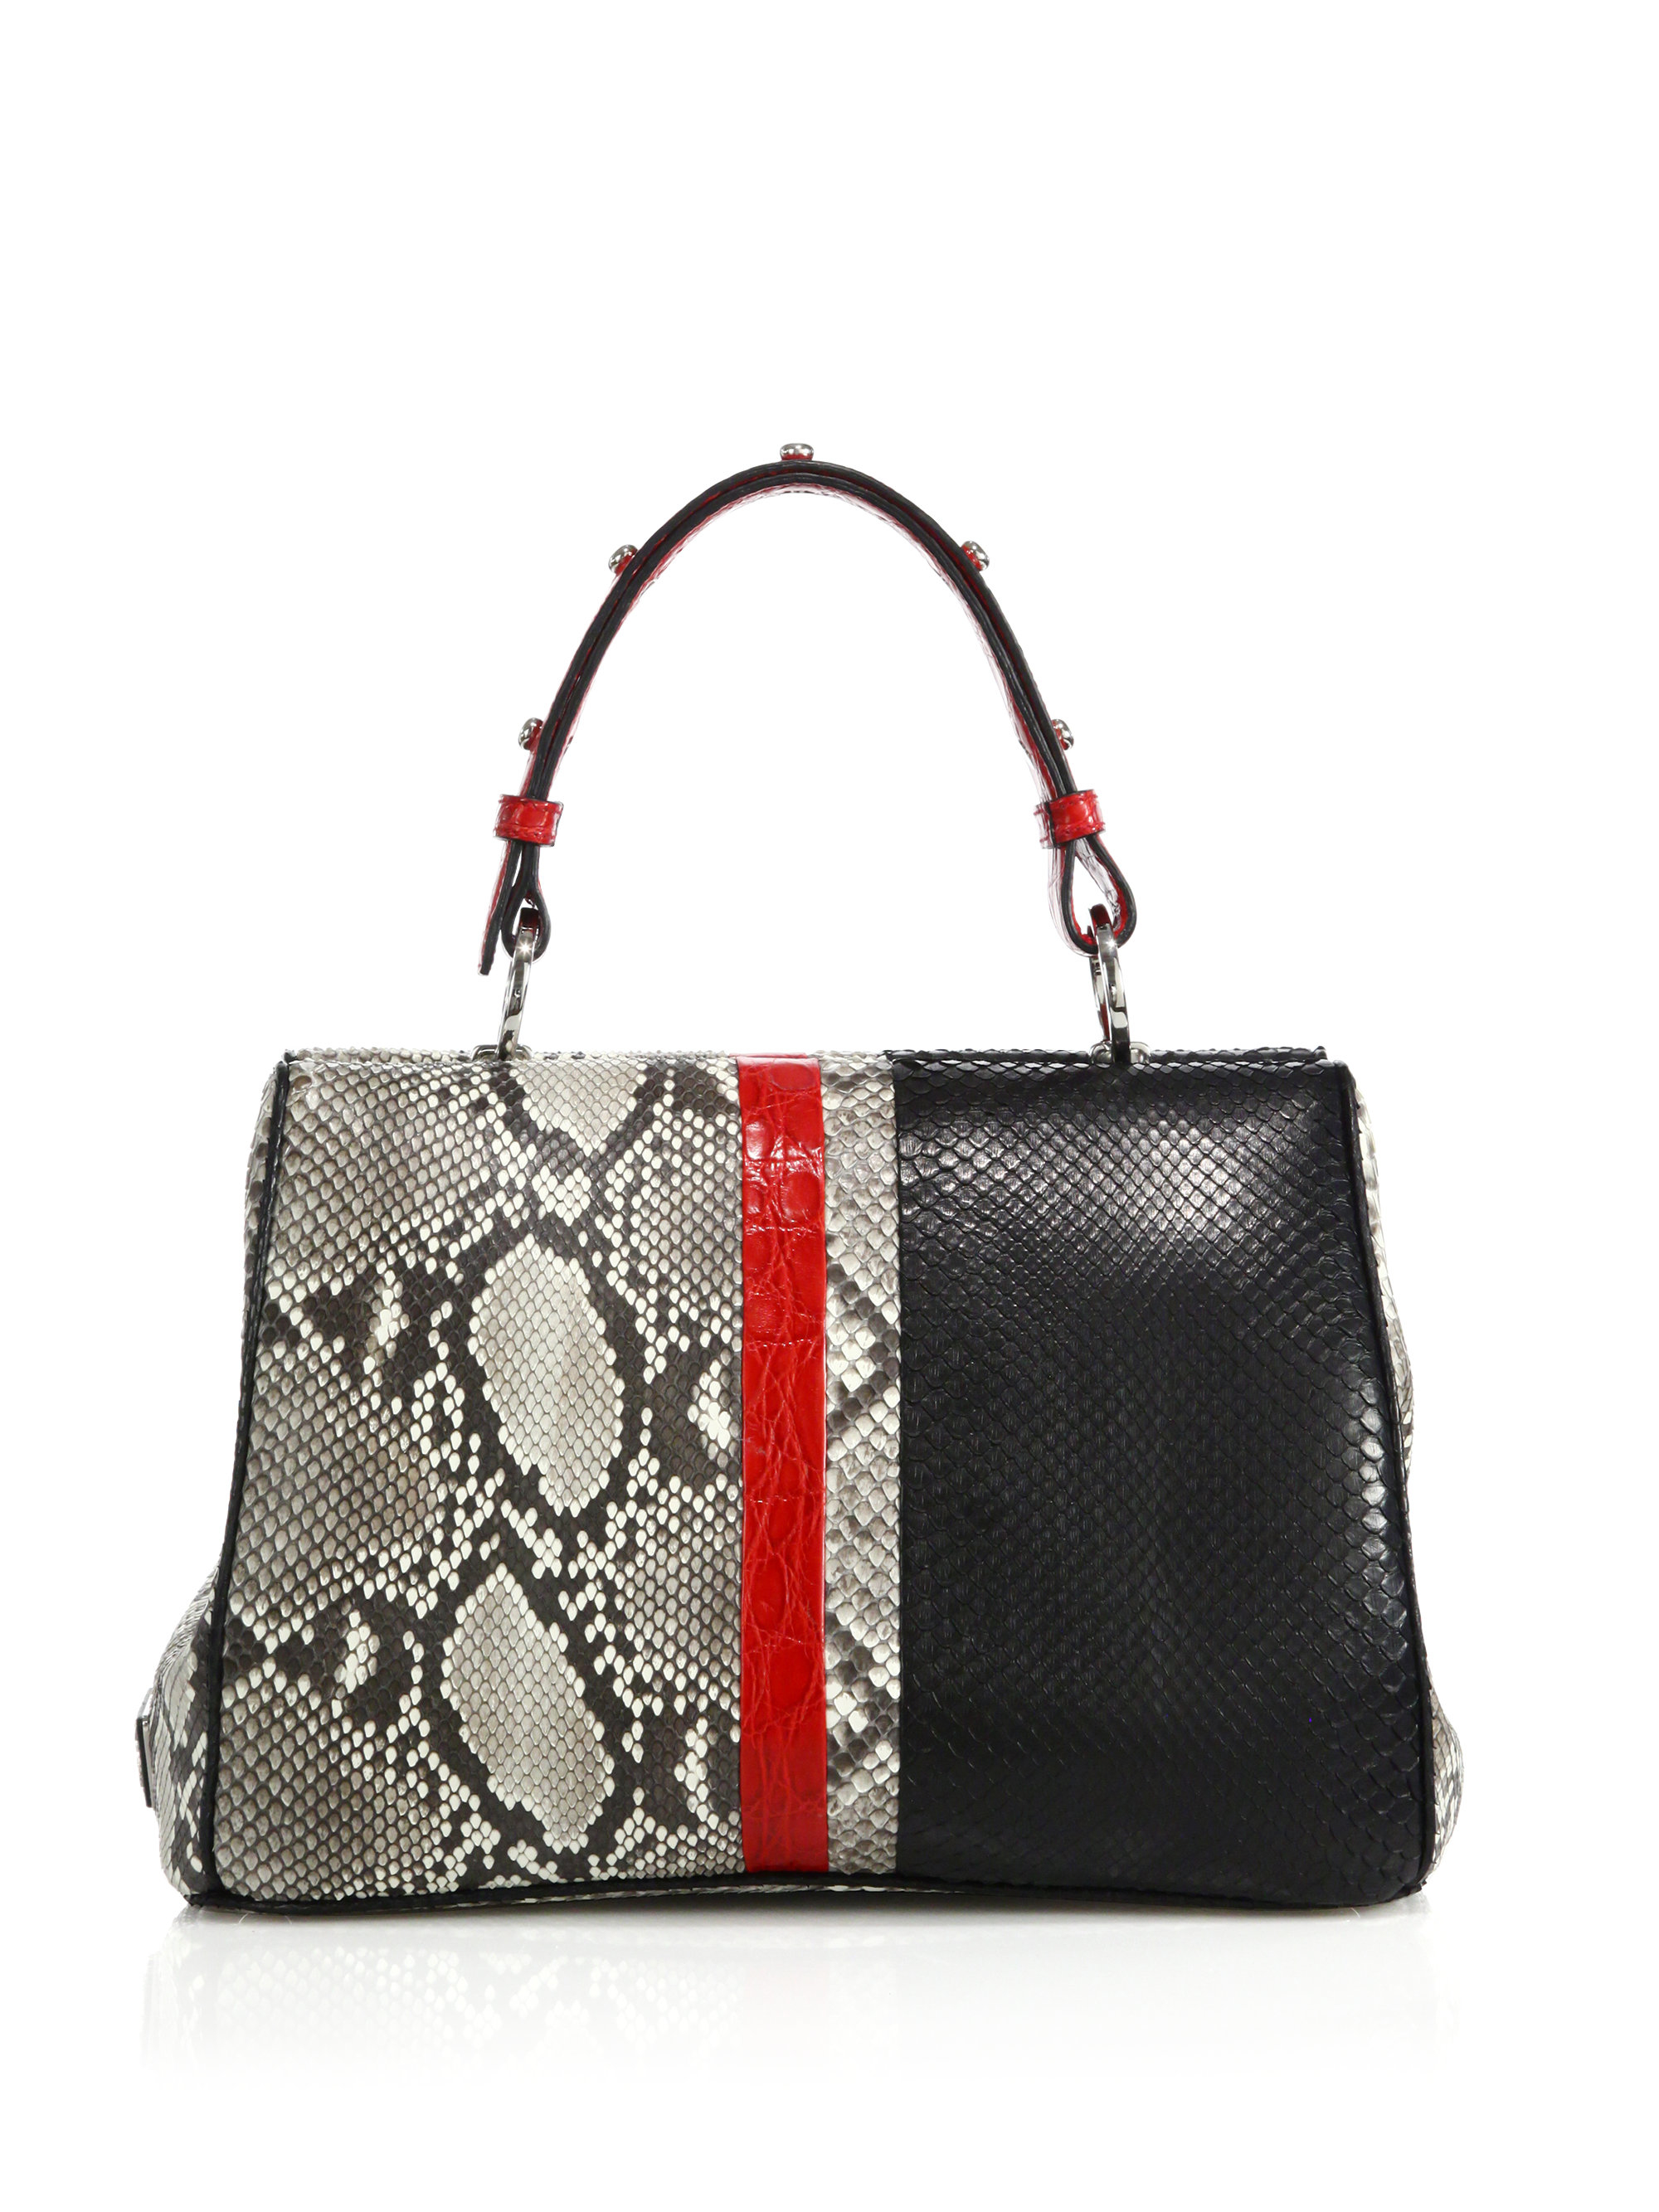 prada metallic frame bag